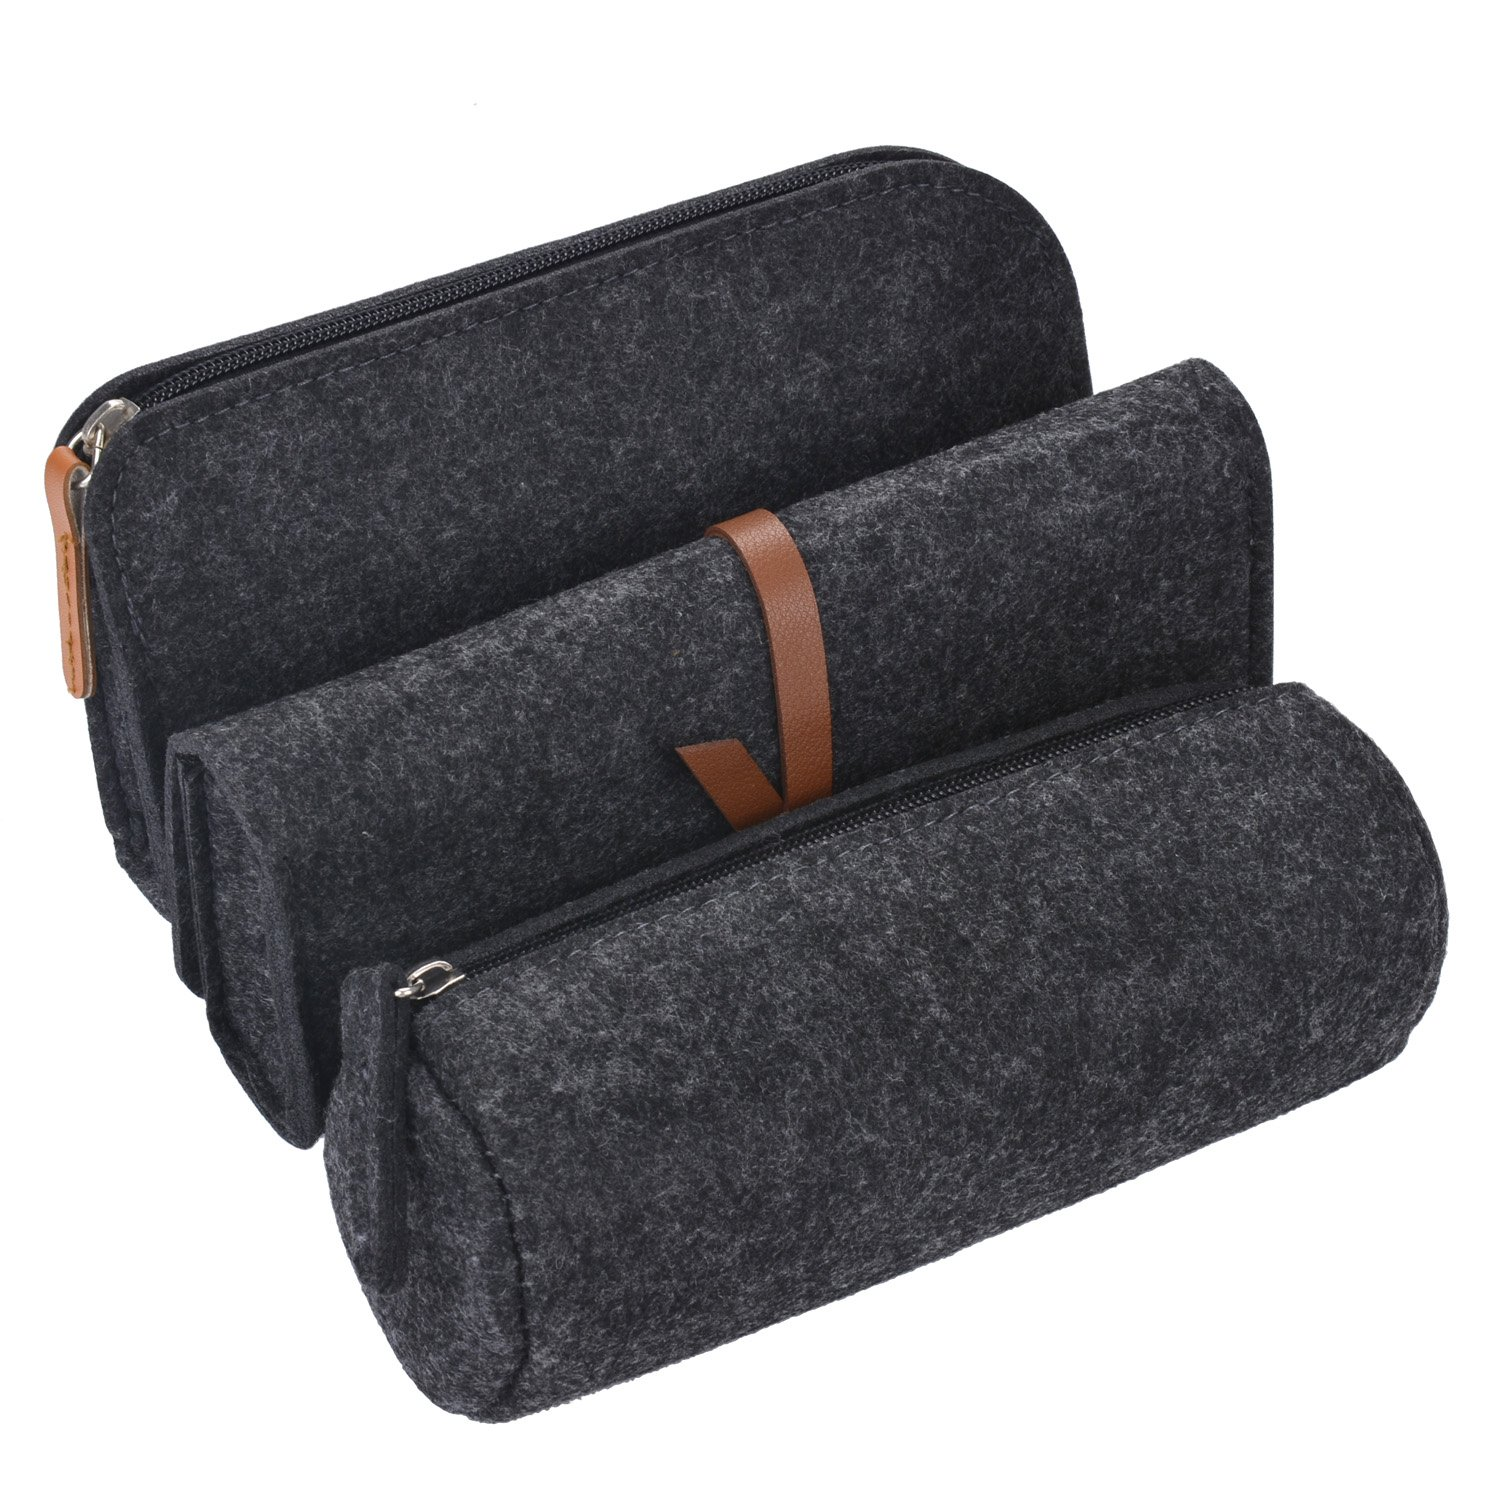 Pencil Case, Coofit 3 Pack Pen Case Pencil Holder Cosmetic Pouch Bag Dark Grey COOFIT-1